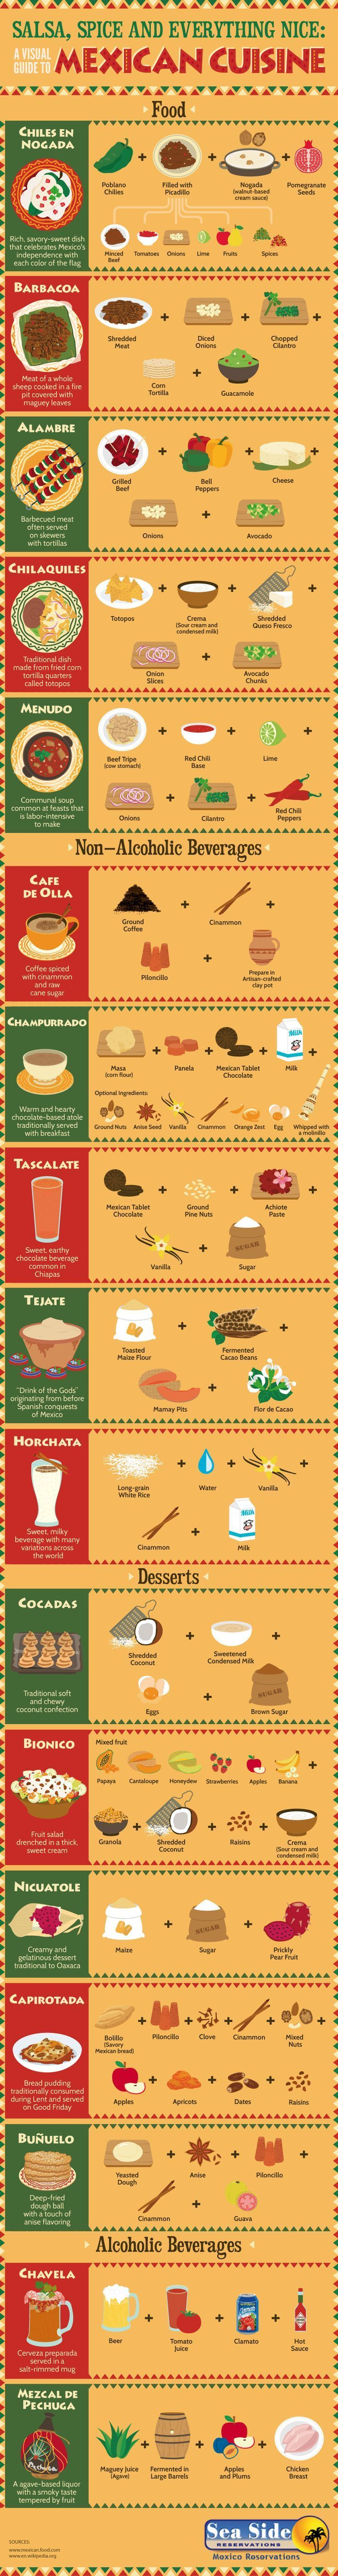 Special Mexican Recipes In One Infographic 17 Special Mexican Recipes In One Infographic17 Special Mexican Recipes In One Infographic